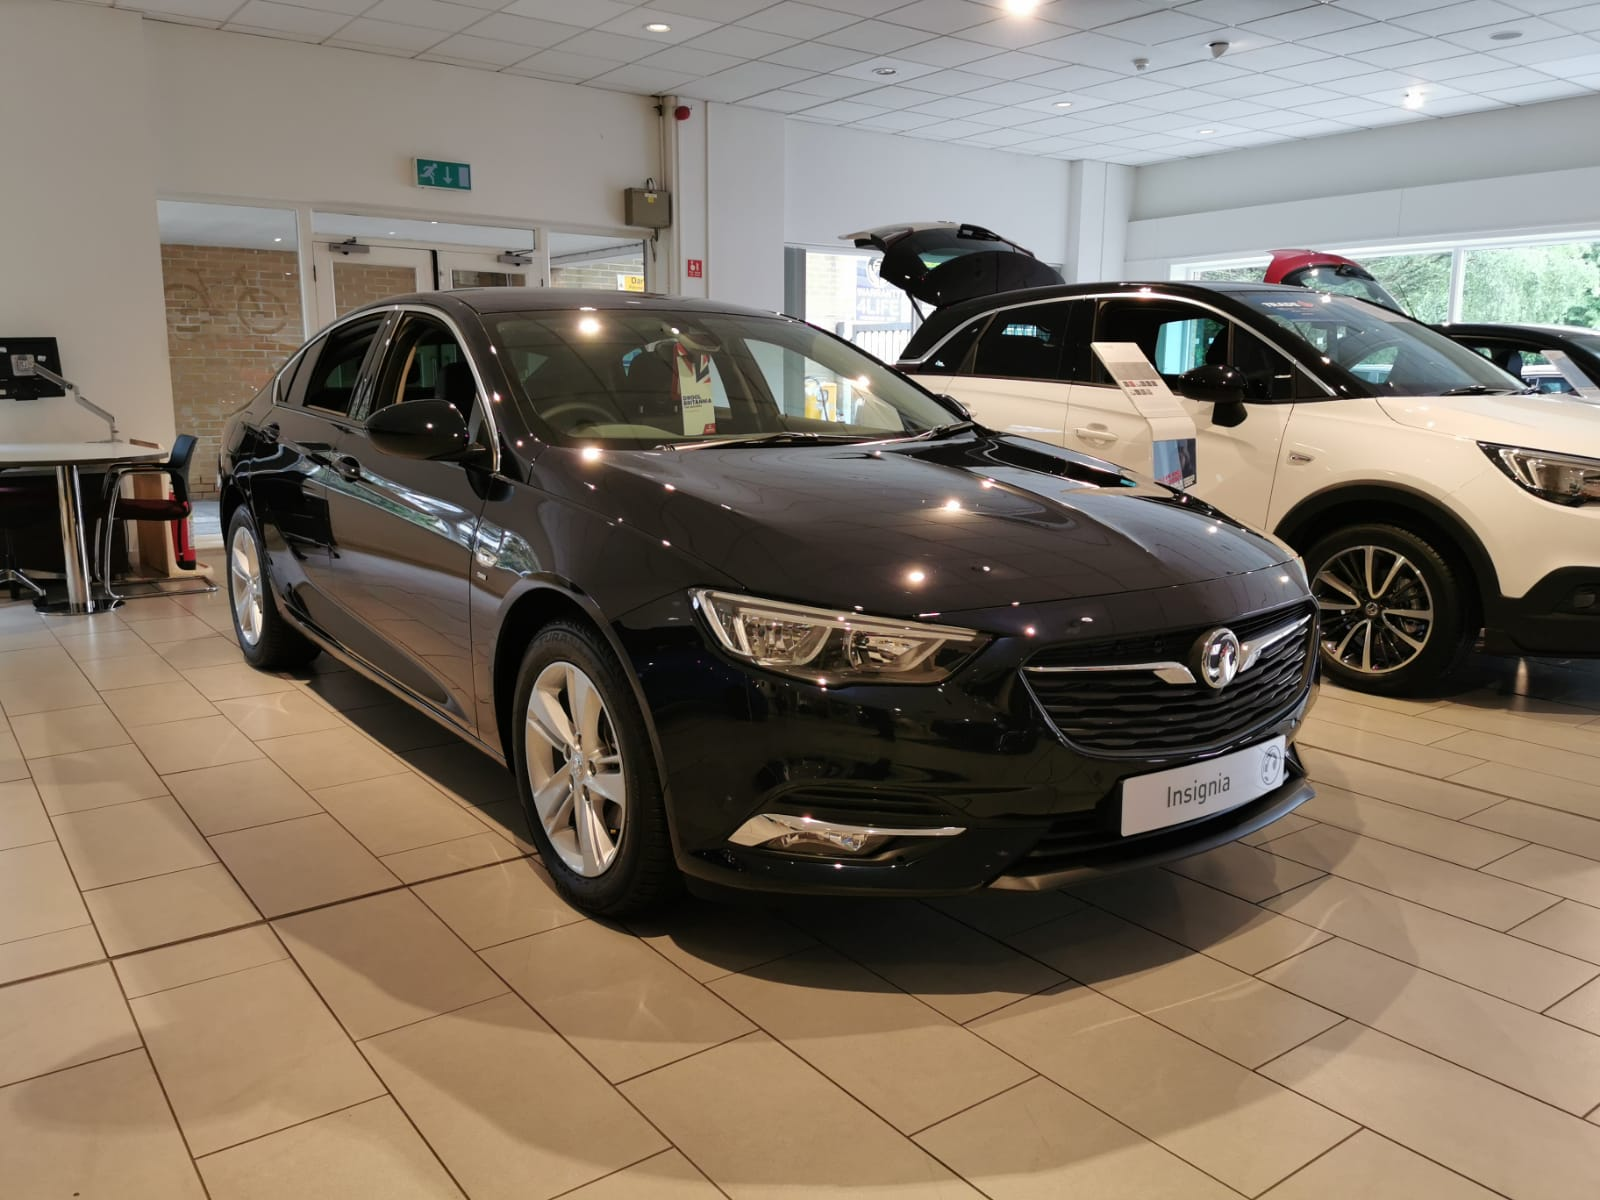 Vauxhall Insignia 1.5T SRi 5dr image 1